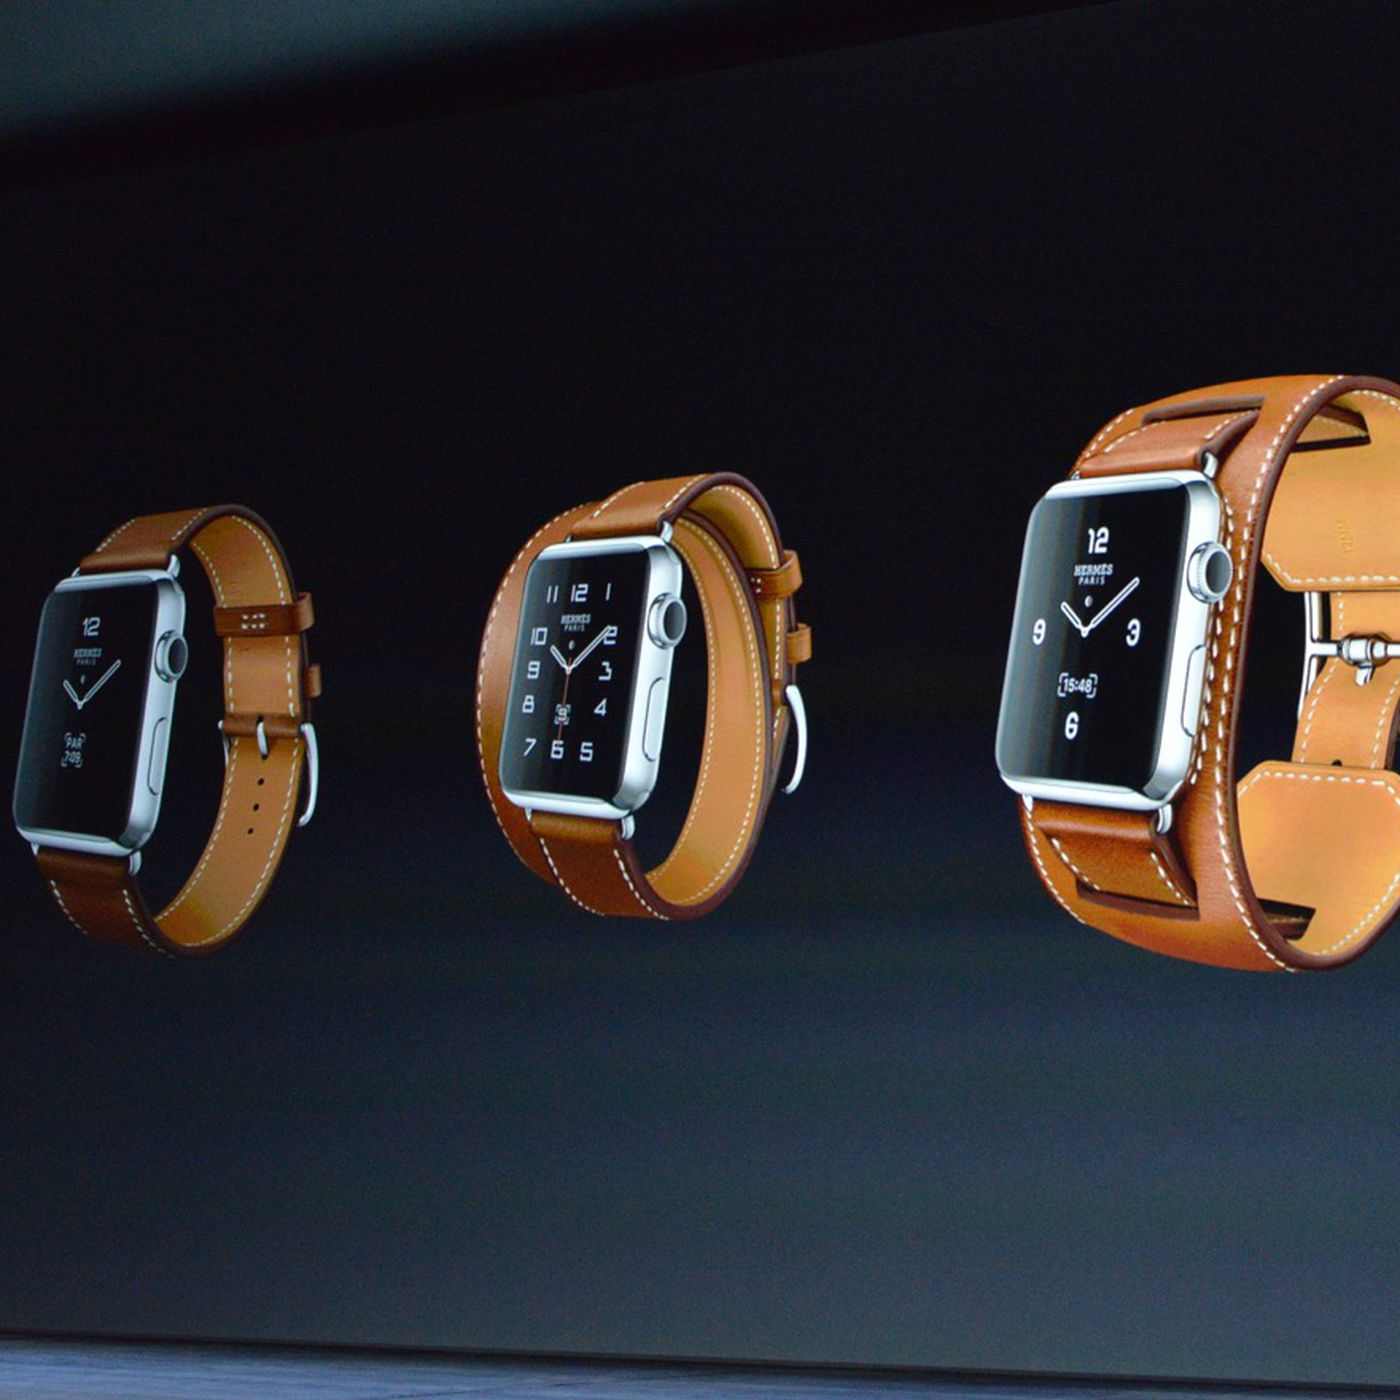 1bb099c9544 Apple and Hermès are teaming up to introduce the Apple Watch Hermès  collection - The Verge